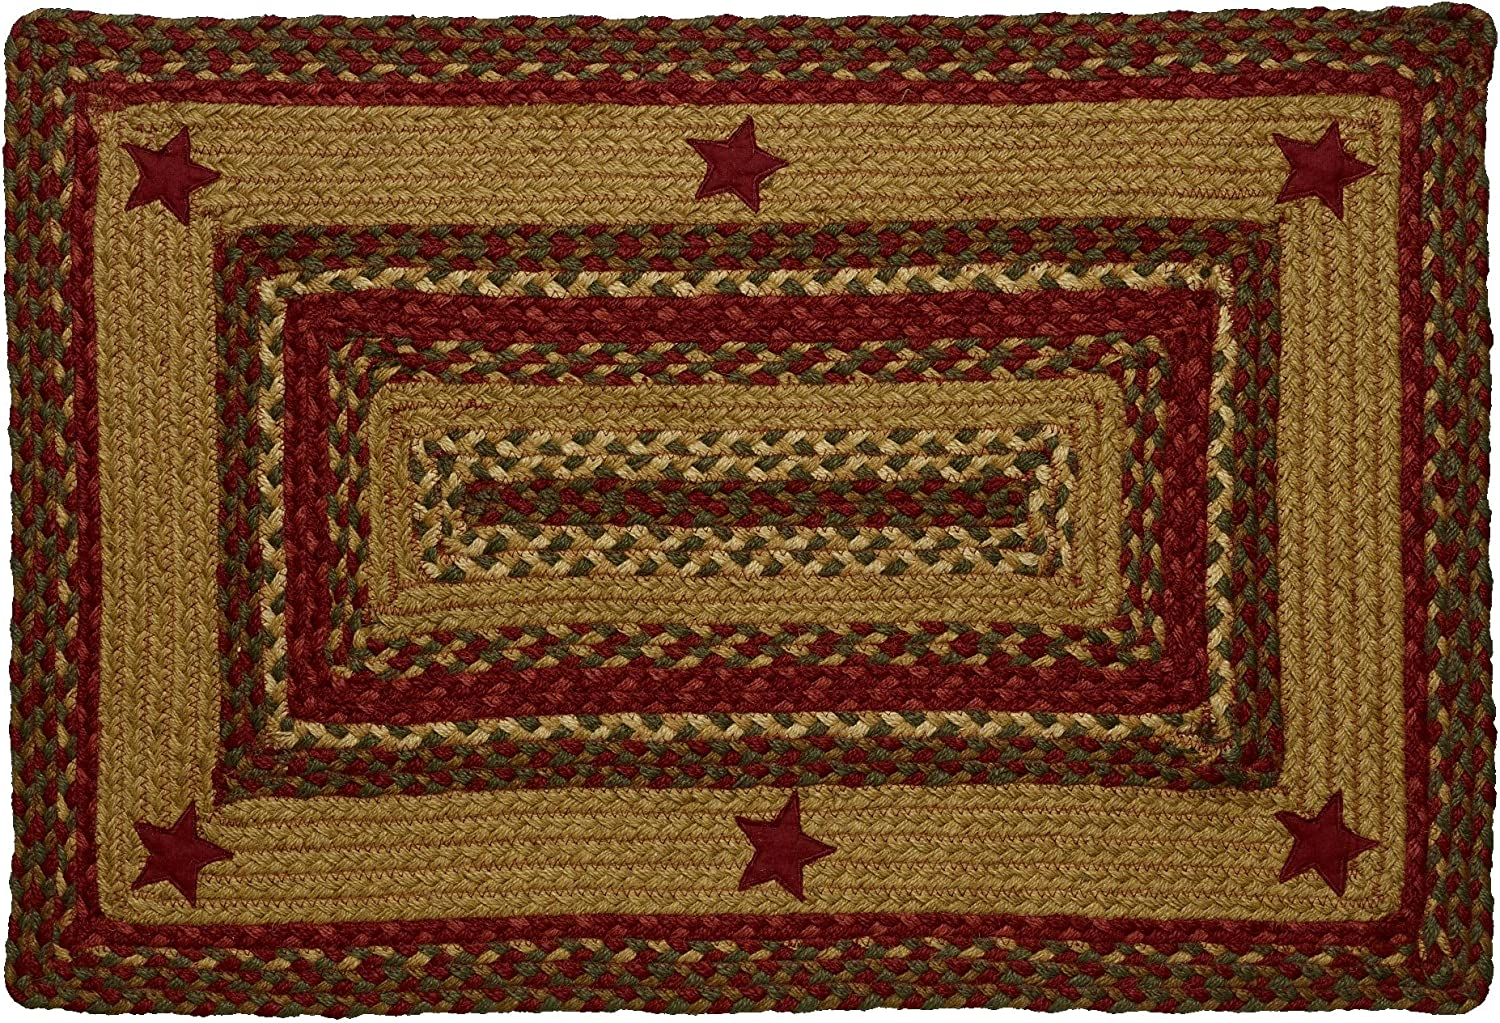 IHF Home Decor Cinnamon Star Rectangle Jute Braided Area Rug Floor Carpet 20 x 30 Inch